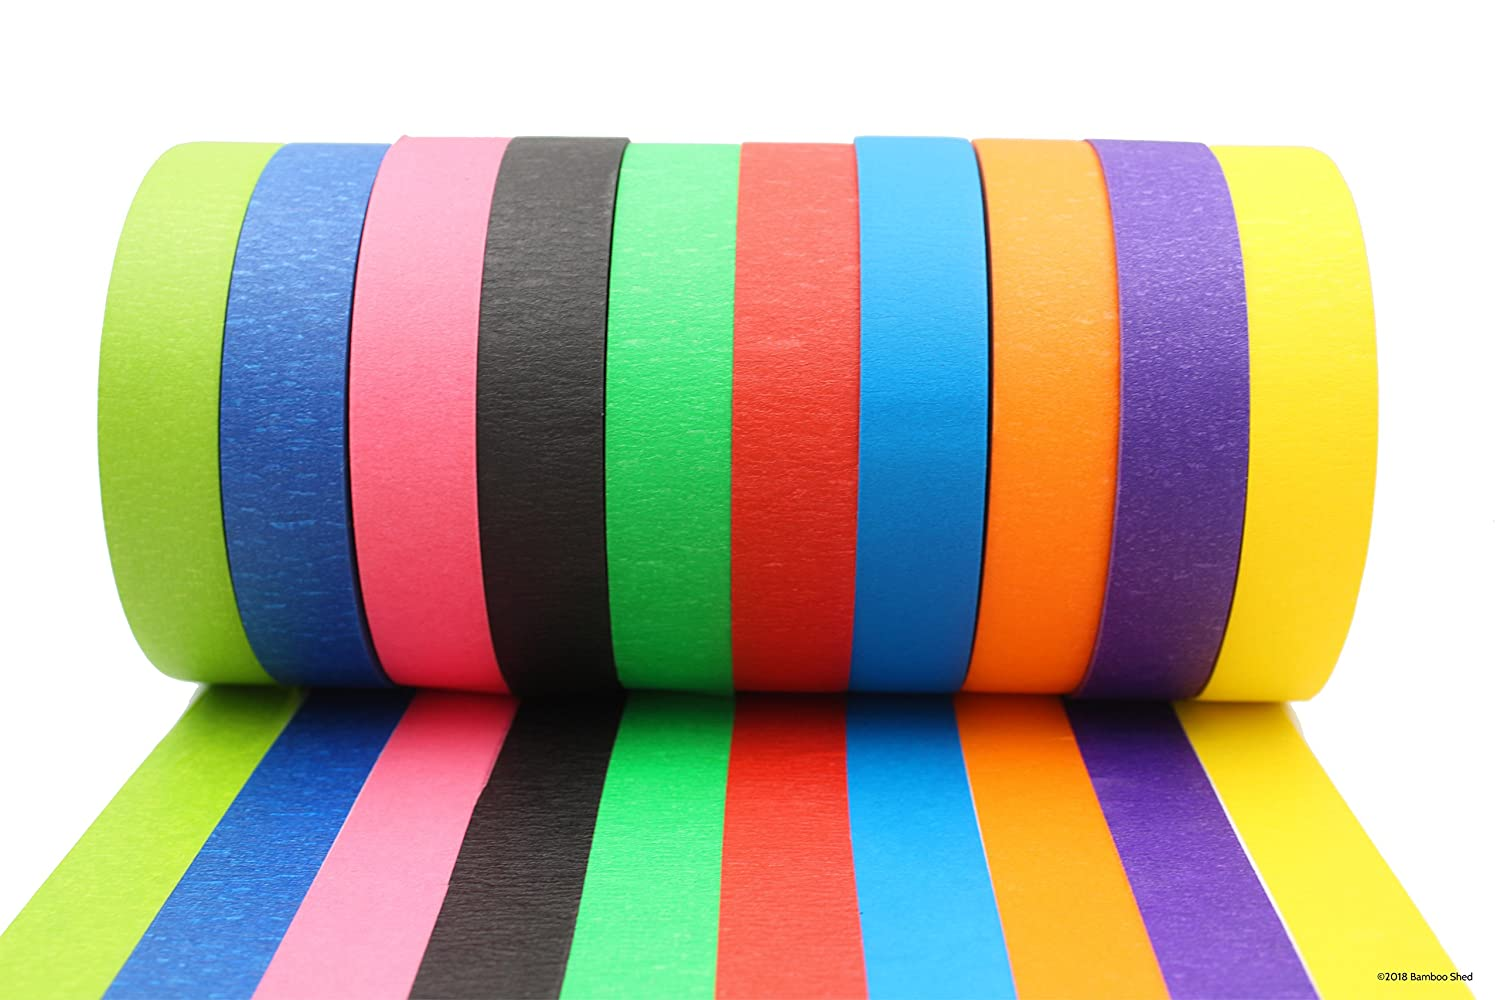 Coloured Tape - Decorative Writable Masking Tape - Large Rolls - Classroom Decorations, Art Projects For Kids, Holiday Decorations - Bright Colours For Coloured Labels and Colour Coding Bambo Shed Bamboo Shed 1 inch x 60yd